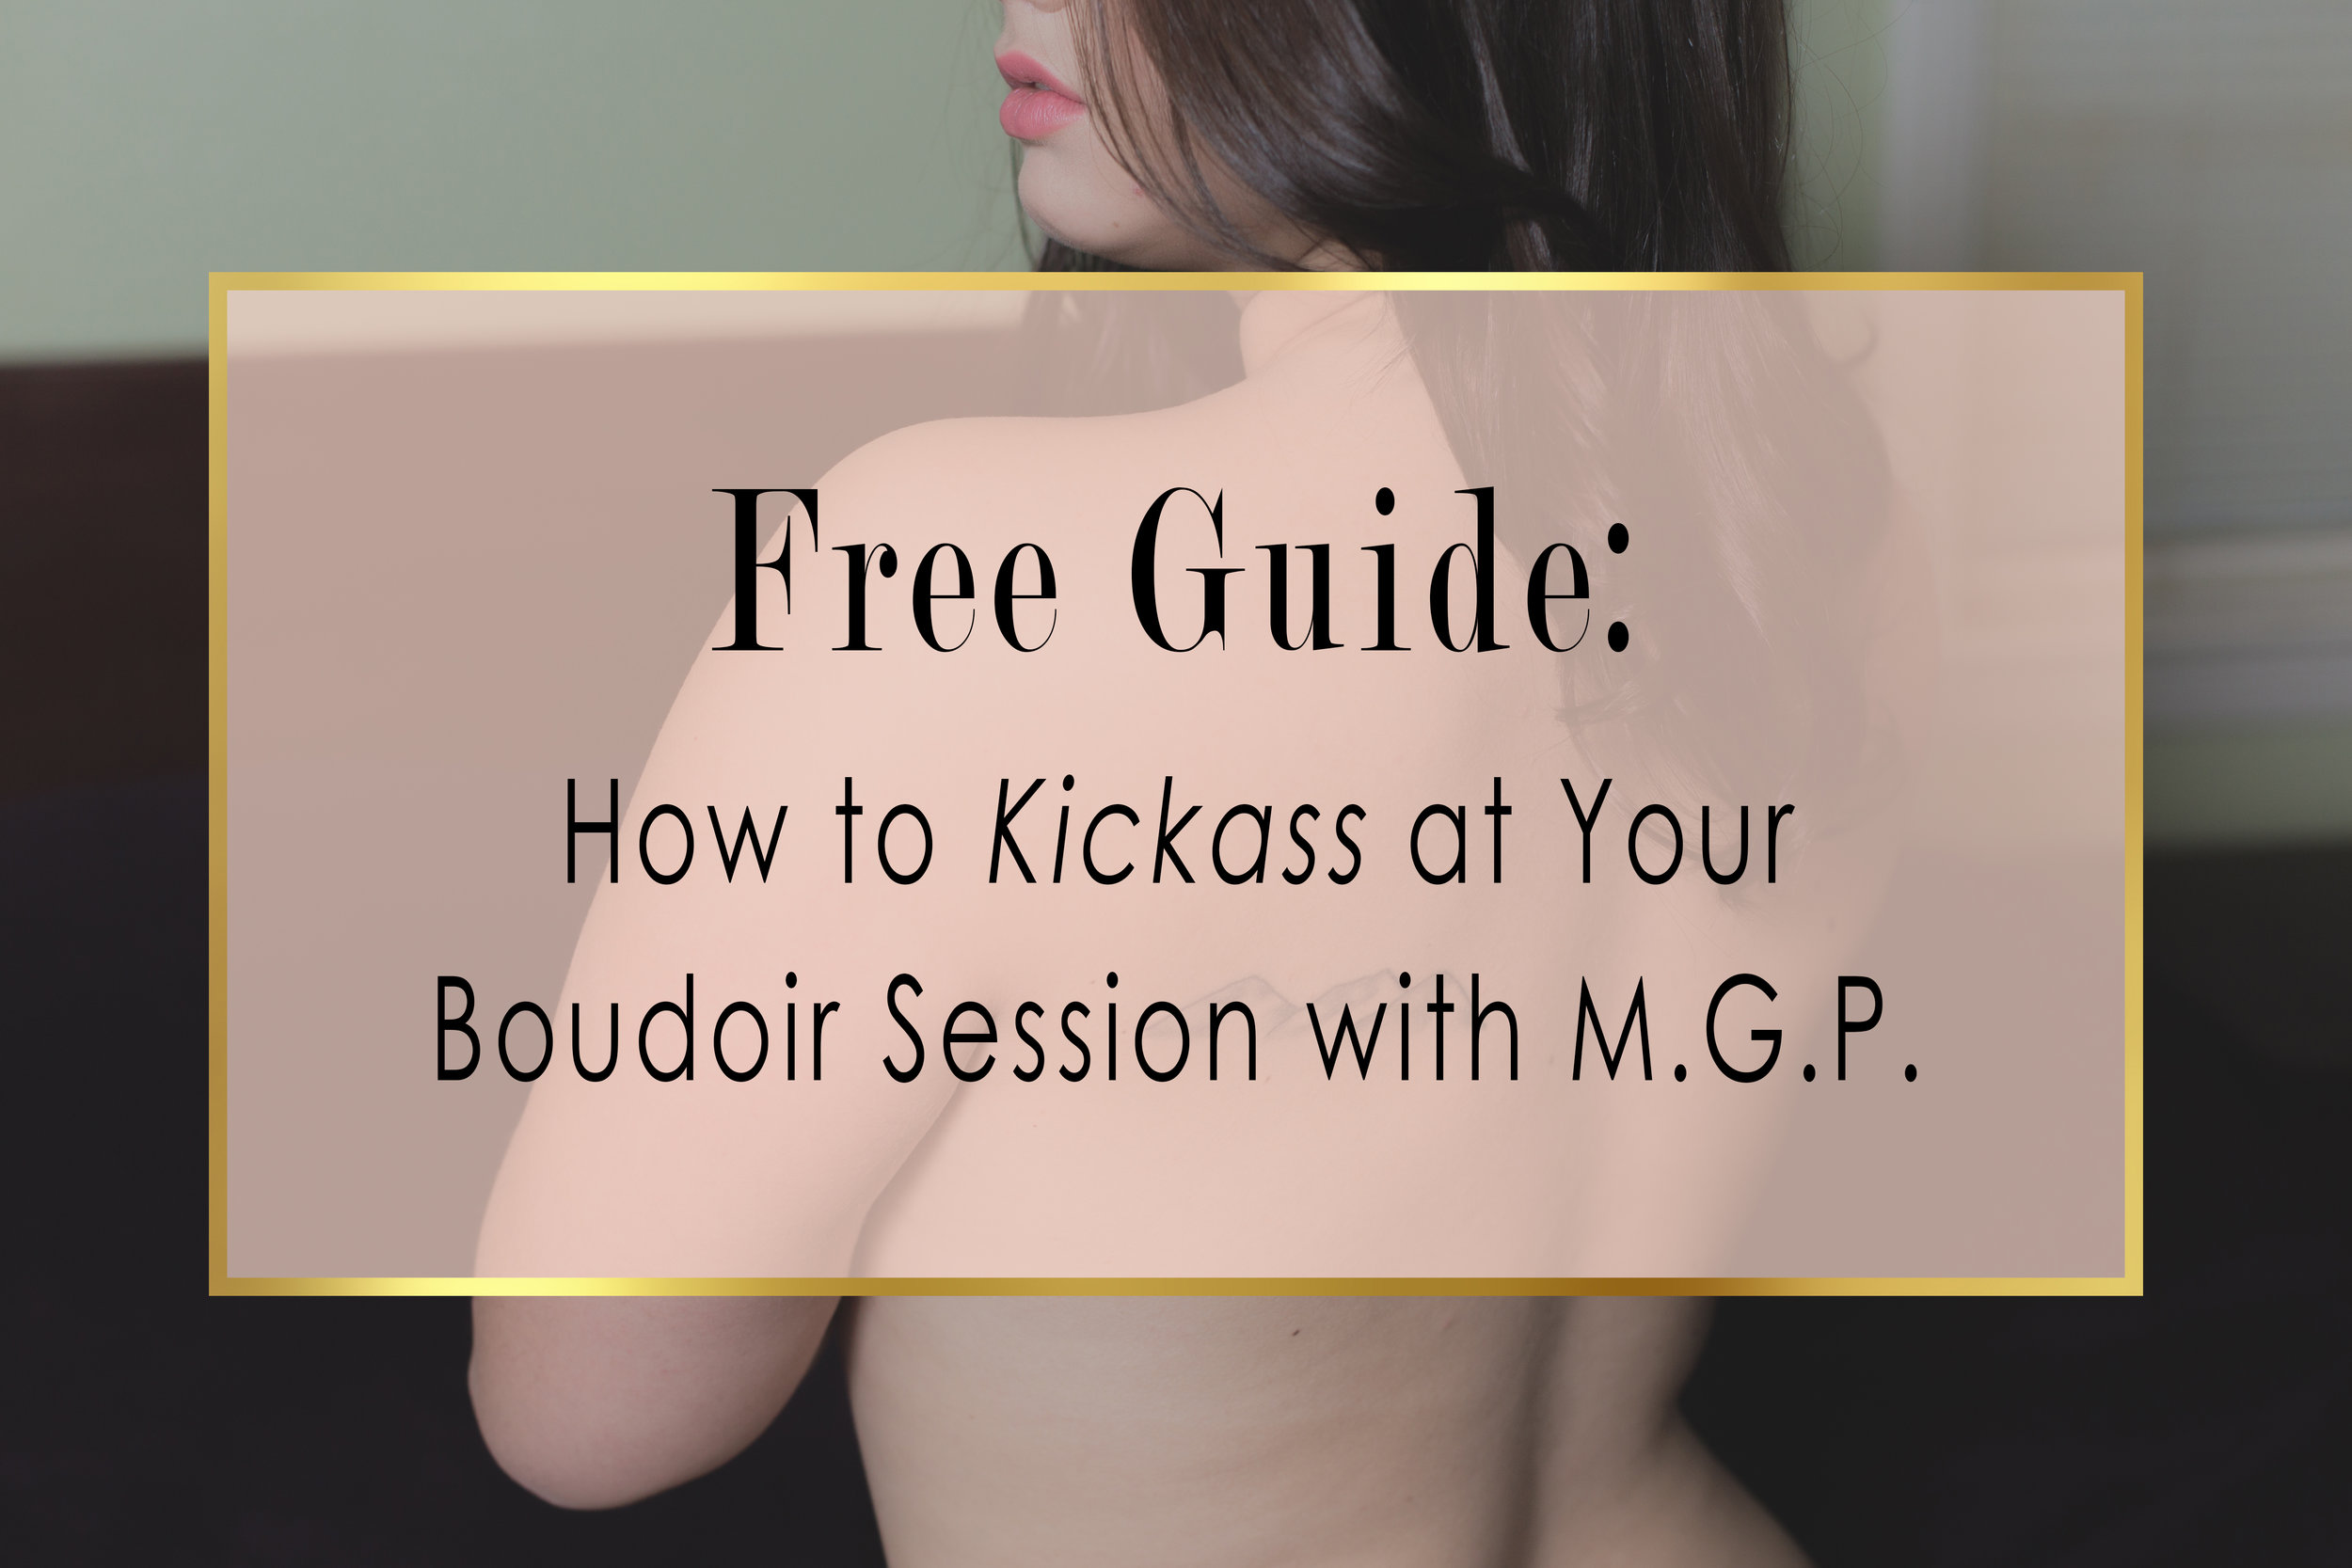 VIP Header-Victoria 4.jpgSign up to become a VIP member with MGP and get your free guide to kickass at your boudoir session!